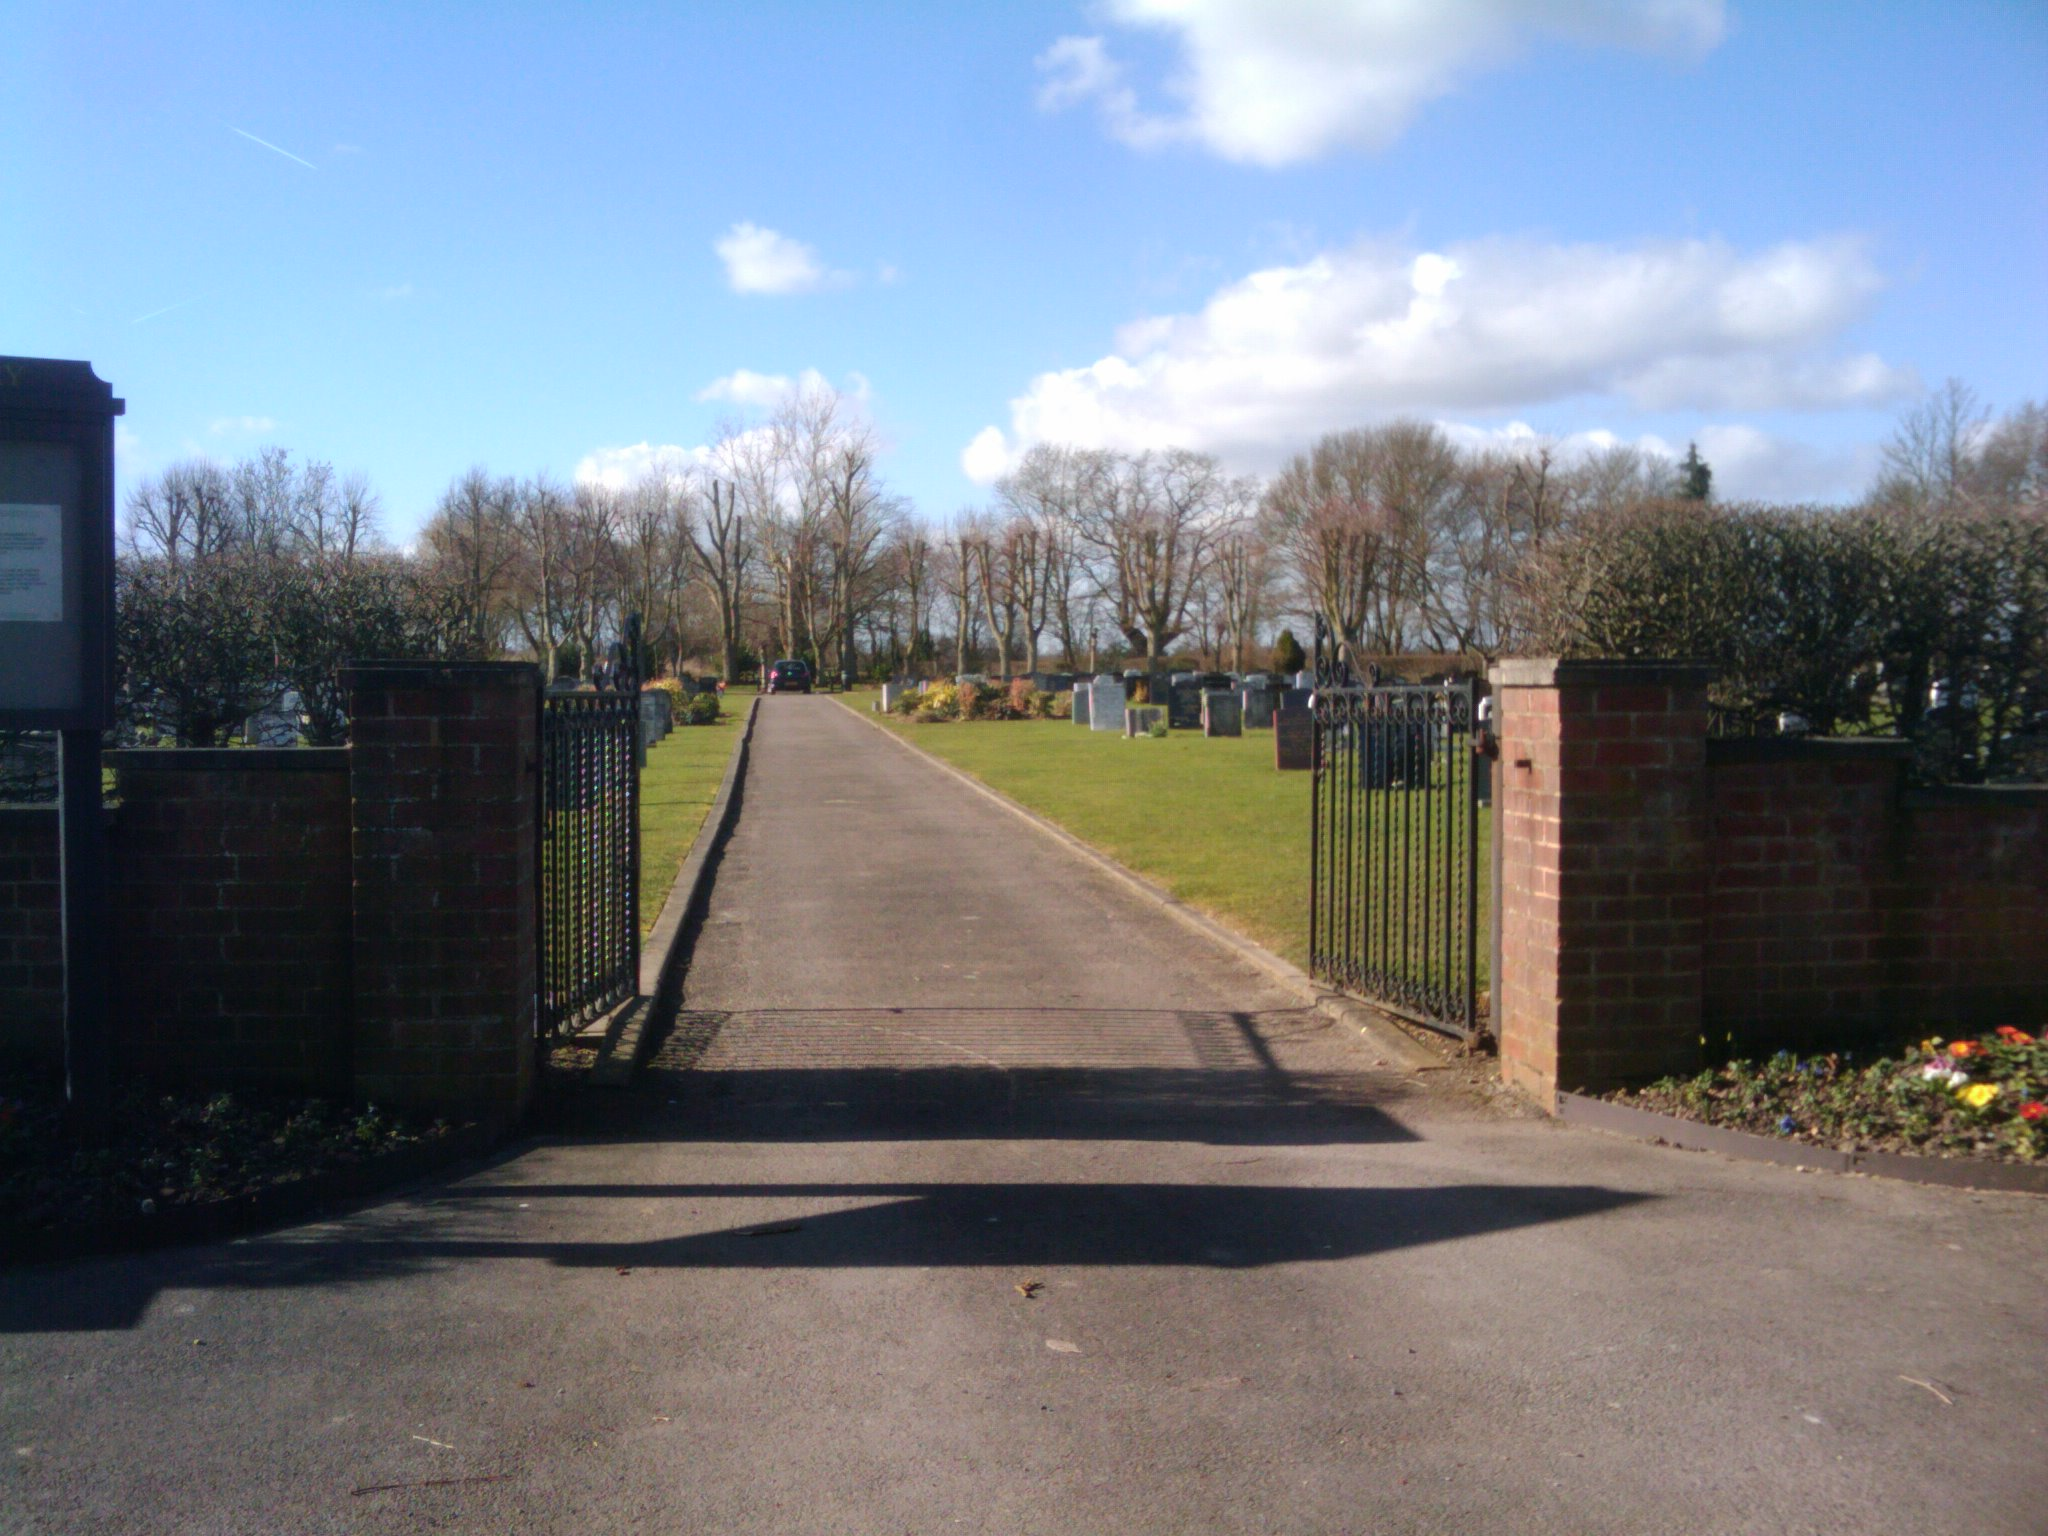 Gated entrance to the cemetary